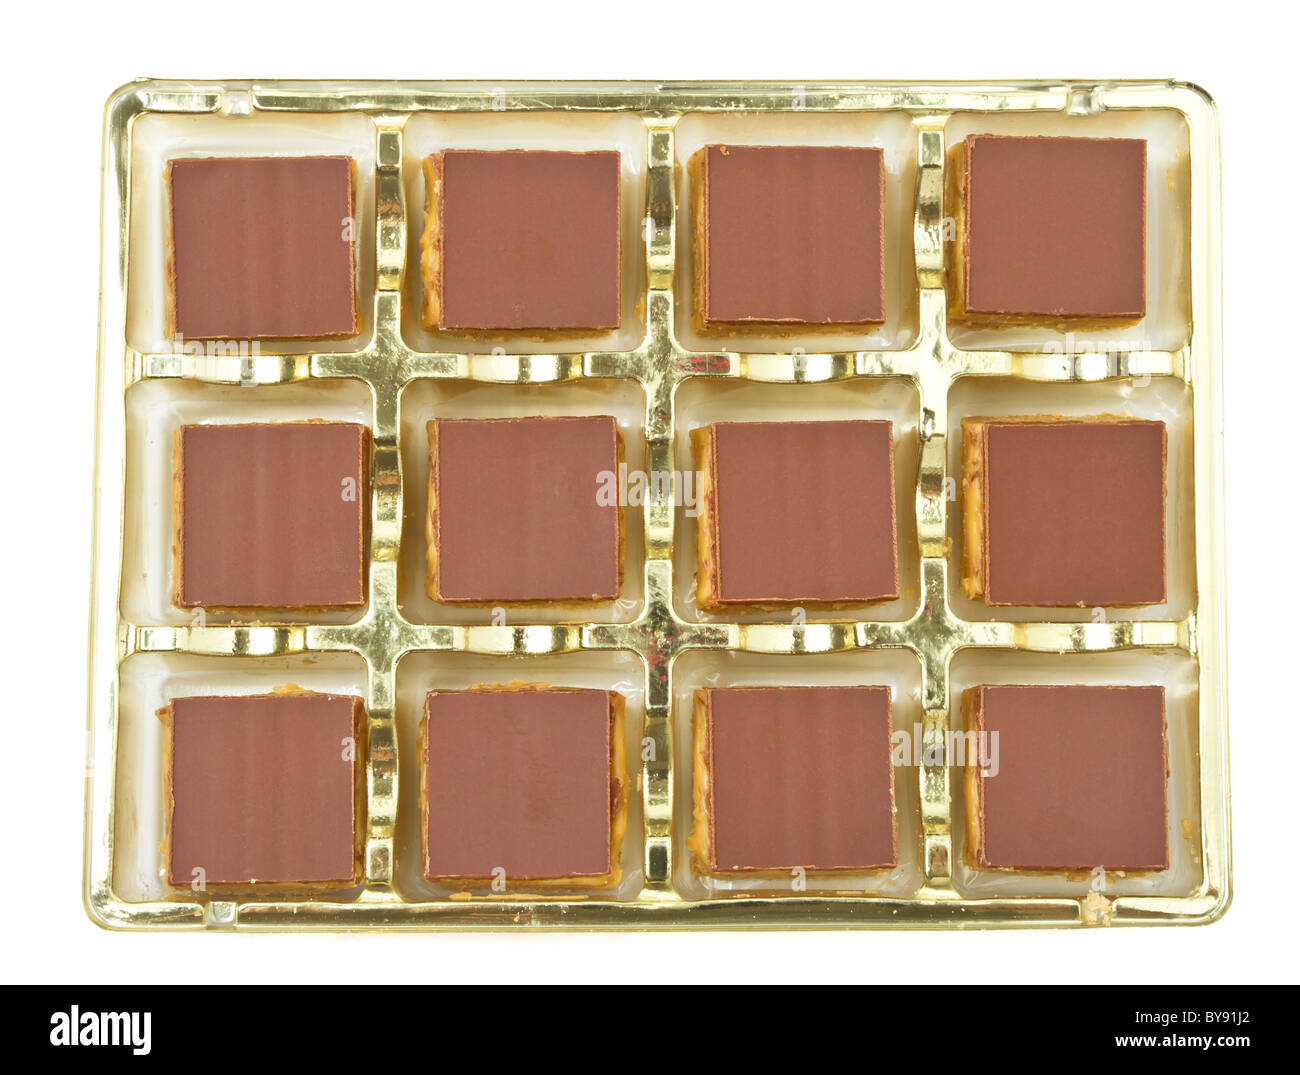 Abstract background of chocolate covered shortbread. - Stock Image